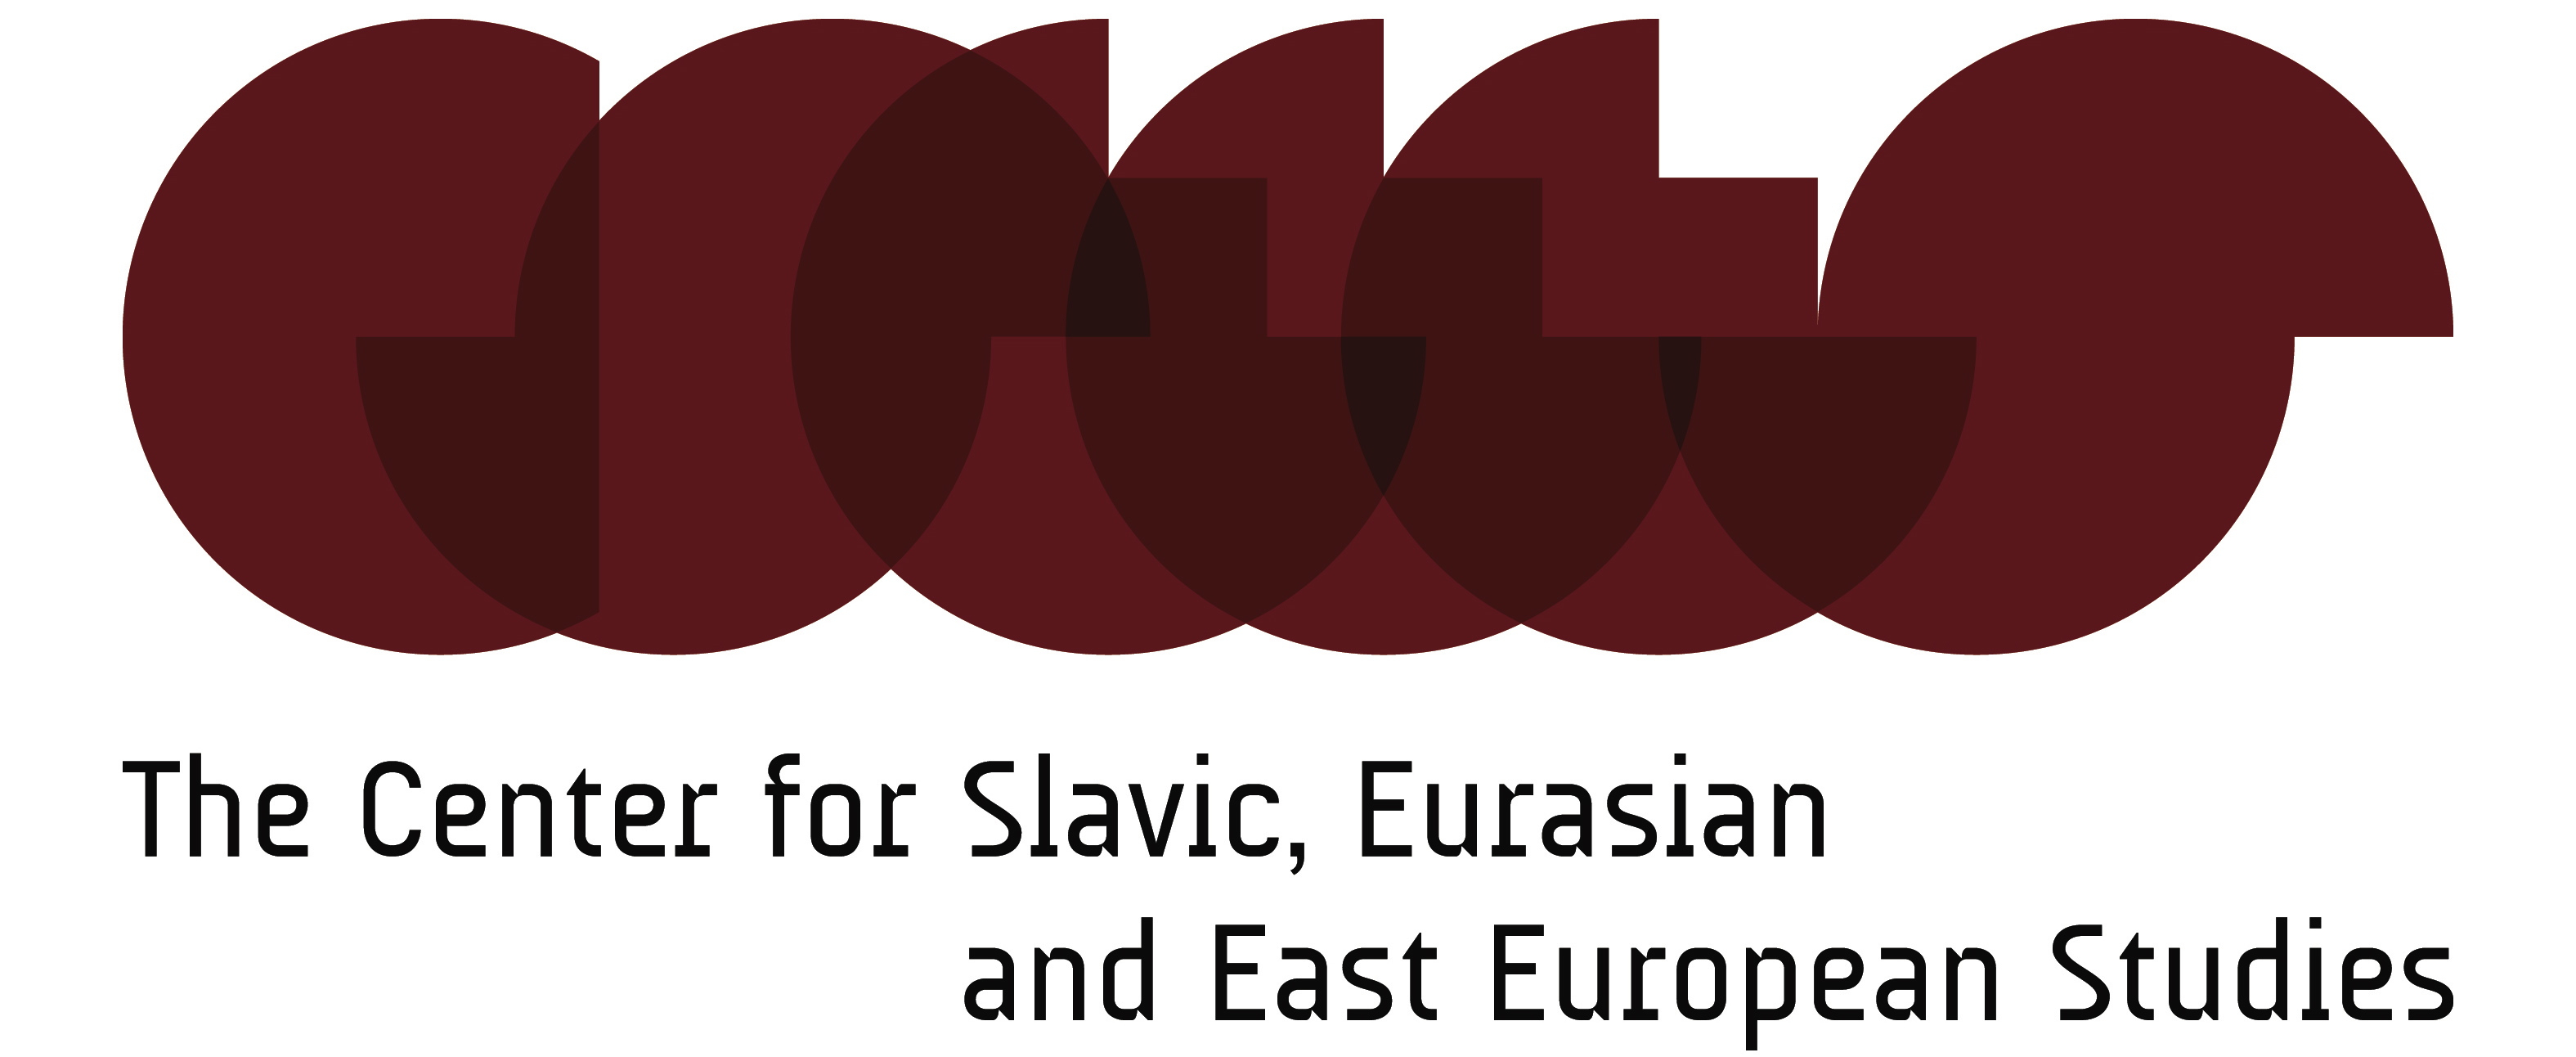 Center for Slavic, Eurasian and East European Studies